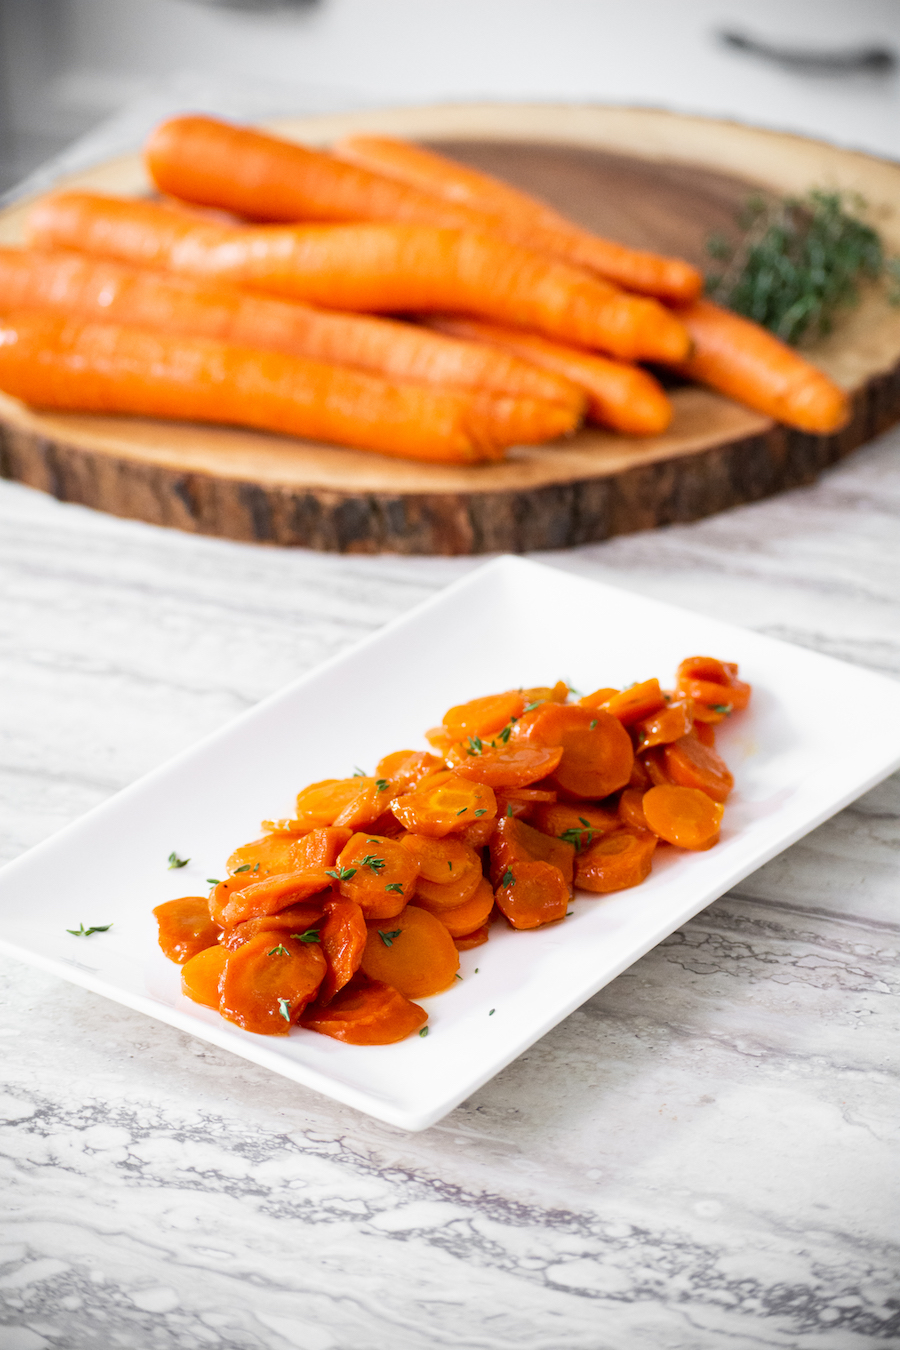 Brown Sugar Bourbon Glazed Carrots